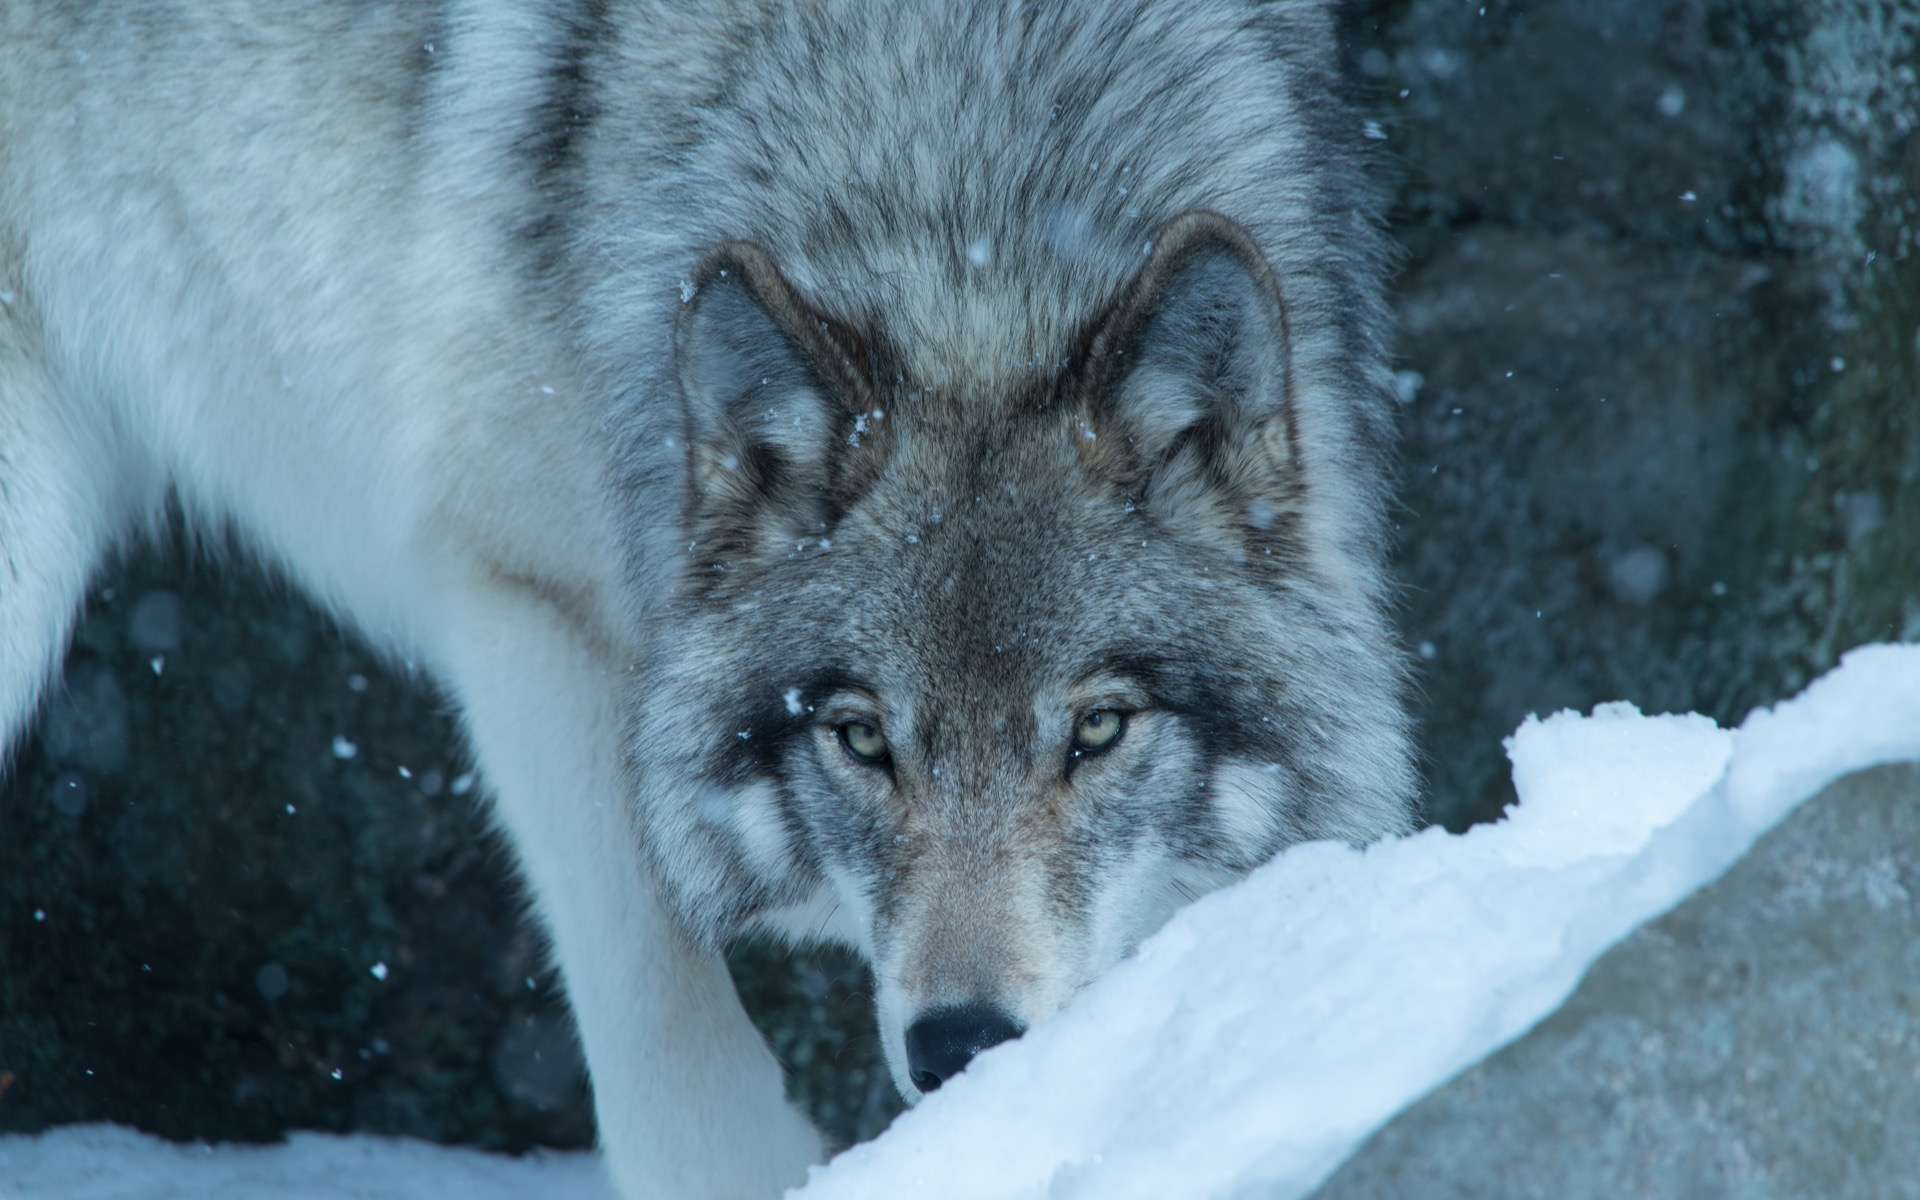 Les causes de la disparition il y a 12.000 ans du « loup terrible » popularisé dans Game of Thrones